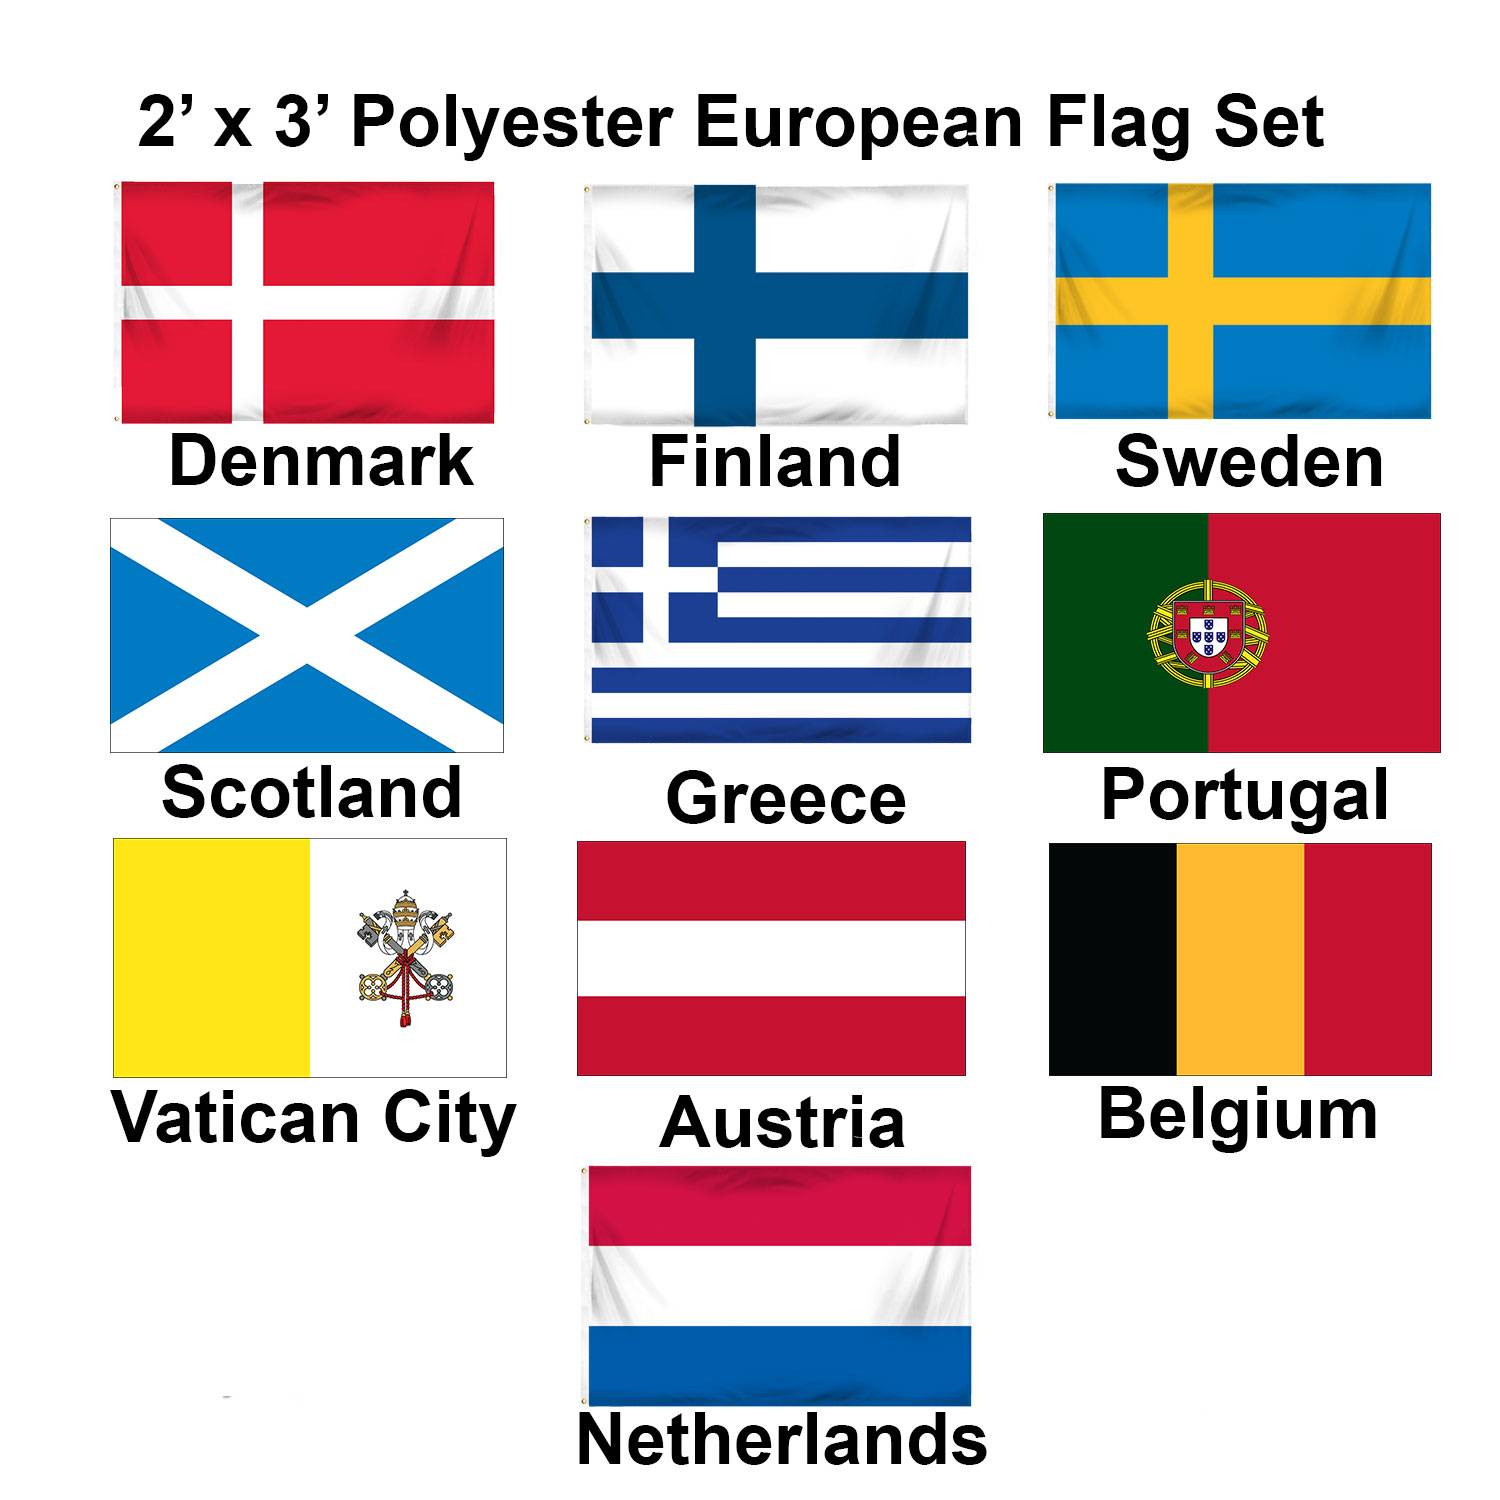 European Flags For Sale 1-800 Flags